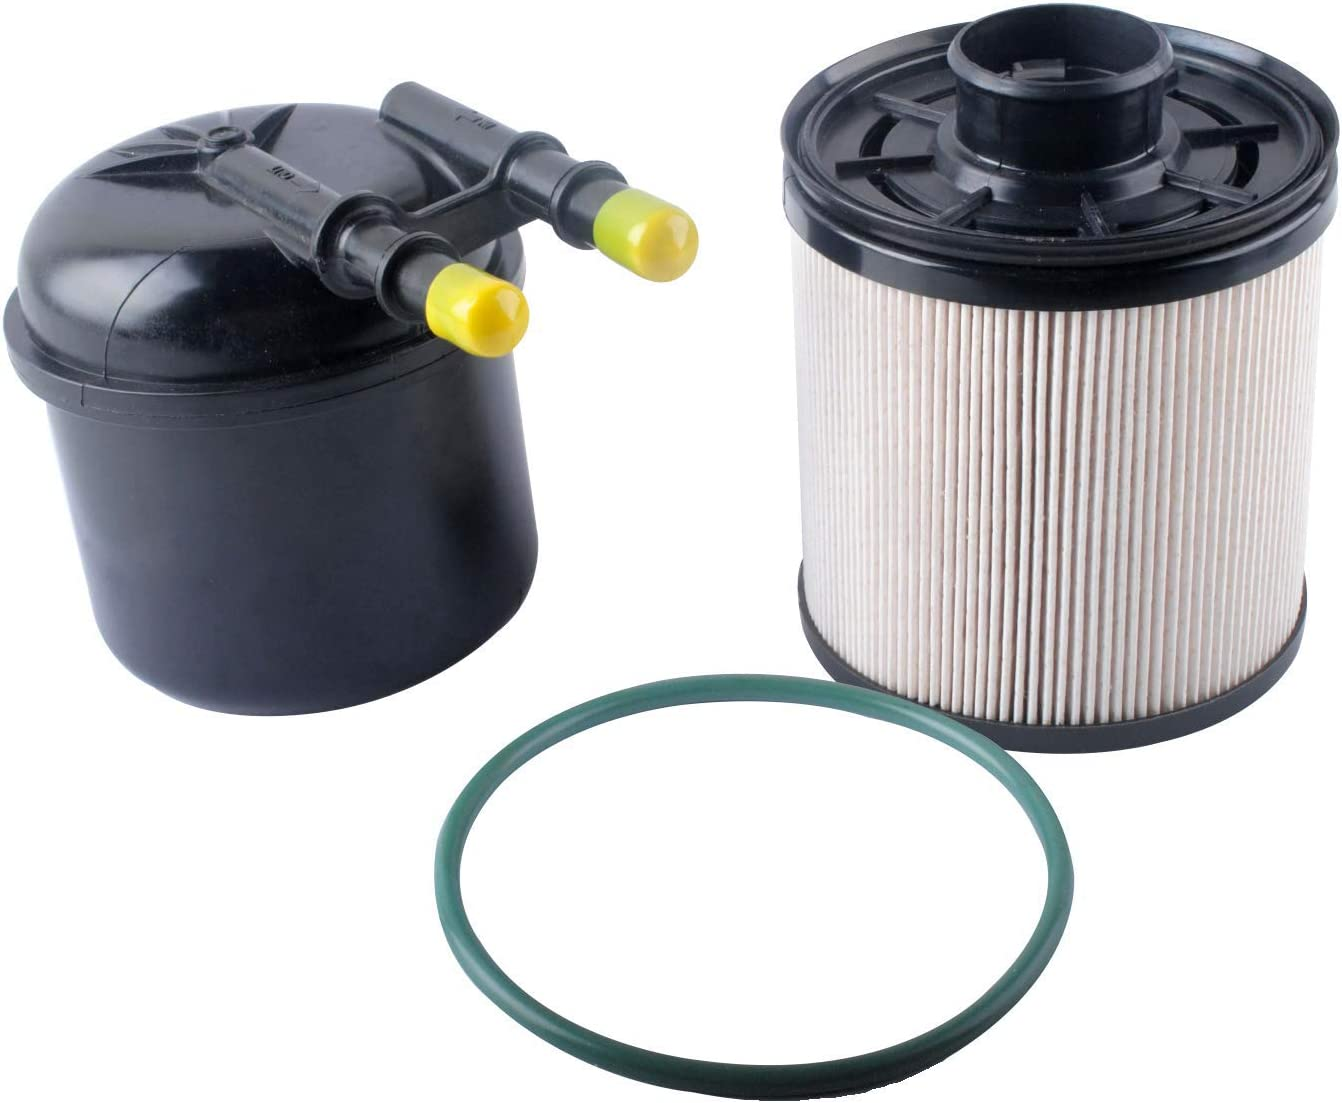 Podoy FD-4615 Fuel Filter